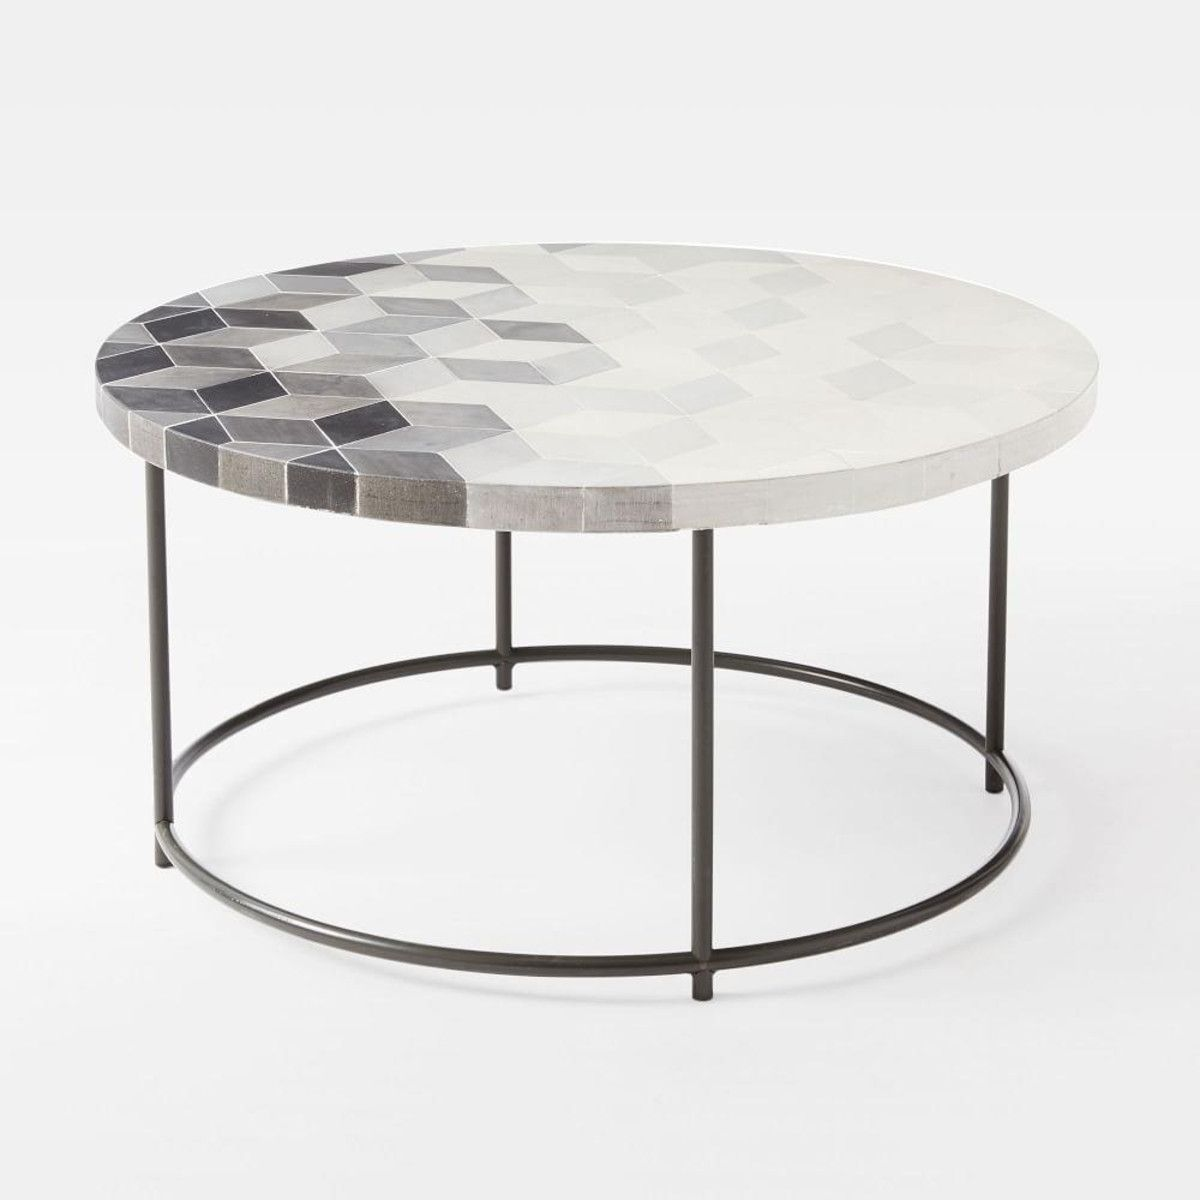 mosaic coffee table isometric concrete metal base mathematical outdoor side wood and round white sliding door dark gray end tables accent half moon glass nest nautical lamps chair